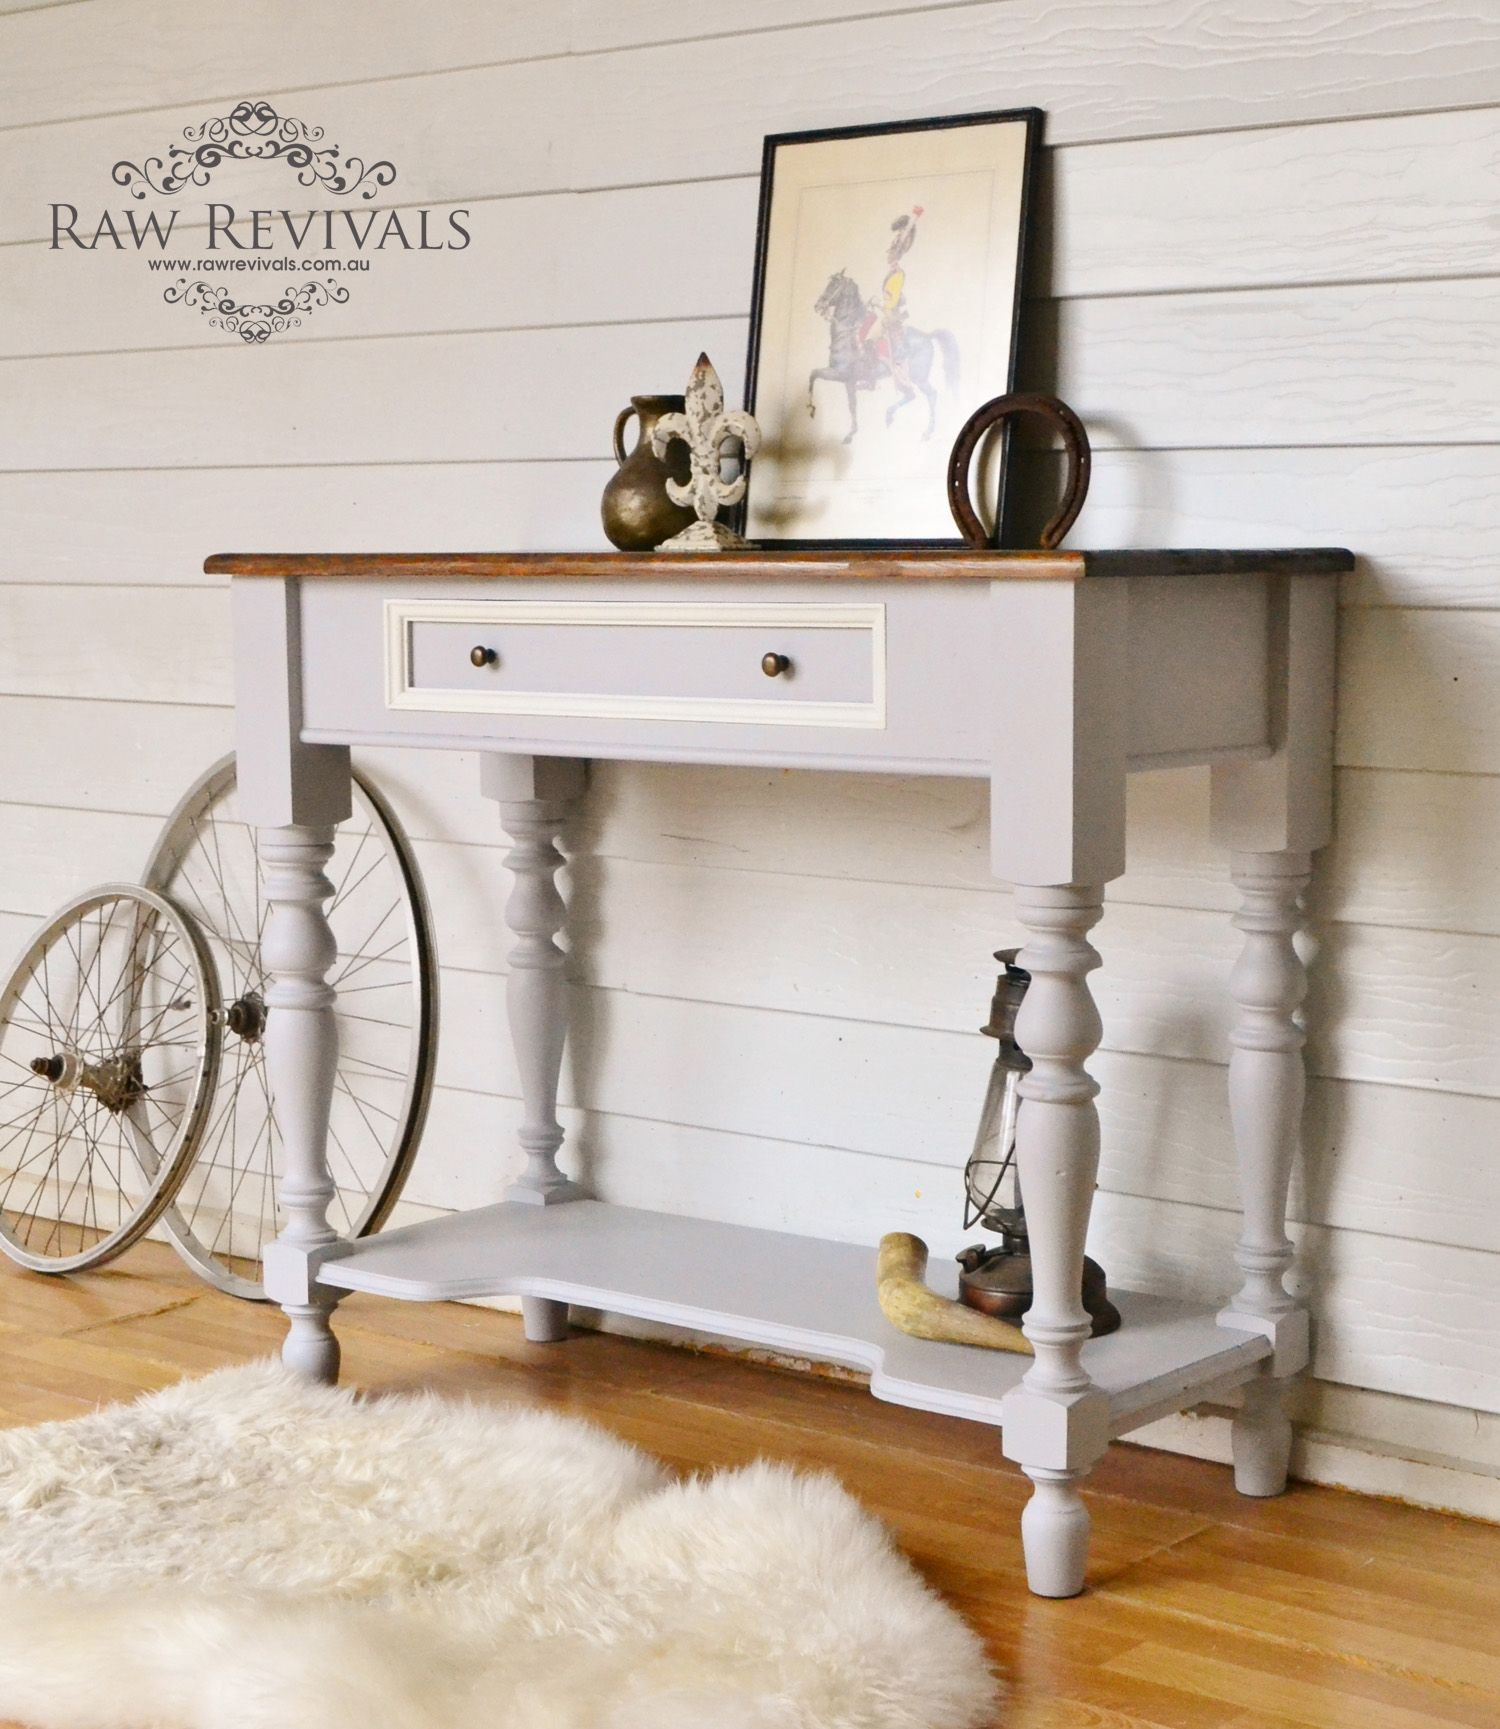 Vintage Hall Table Vintage Hall Table Painted In A Soft Grey With White Accents